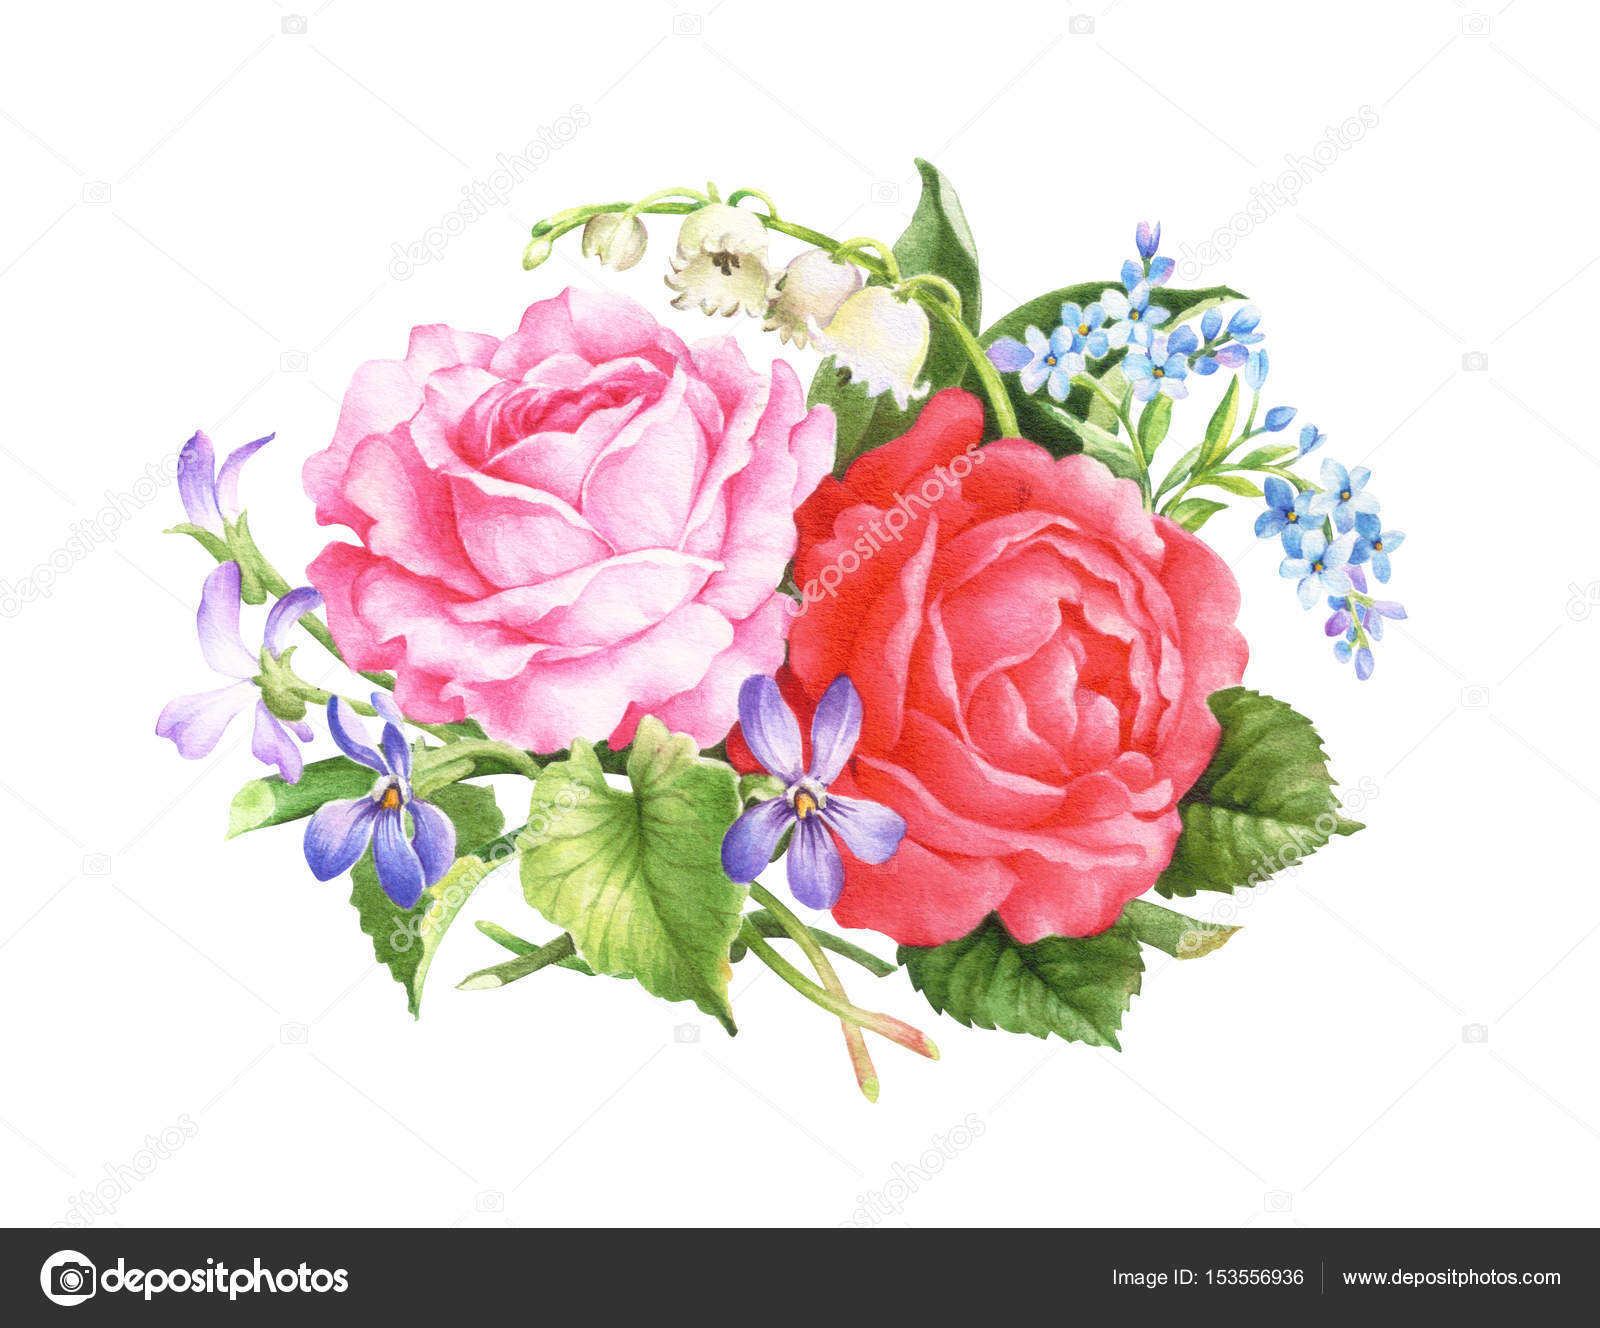 Card Template With Watercolor Roses Raster Illustration Clipping